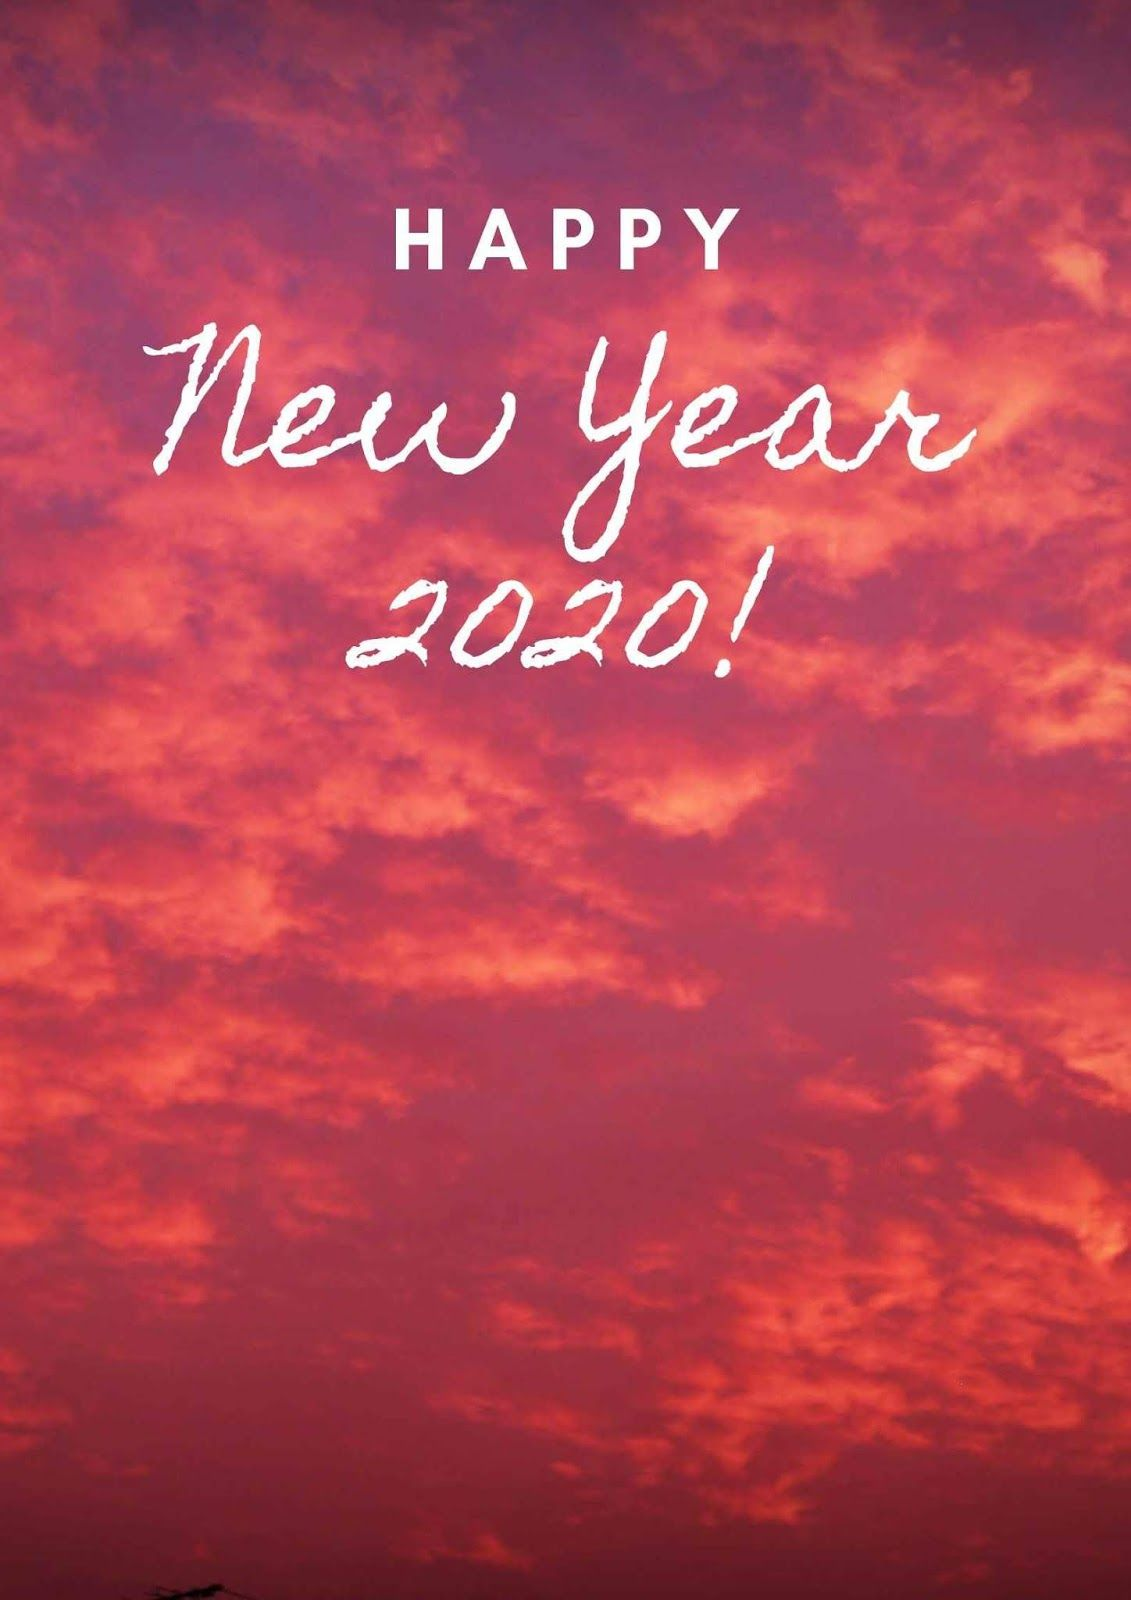 New Year Greetings For Best Friend 2020 Happy New Year Quotes Quotes About New Year Happy New Year Greetings